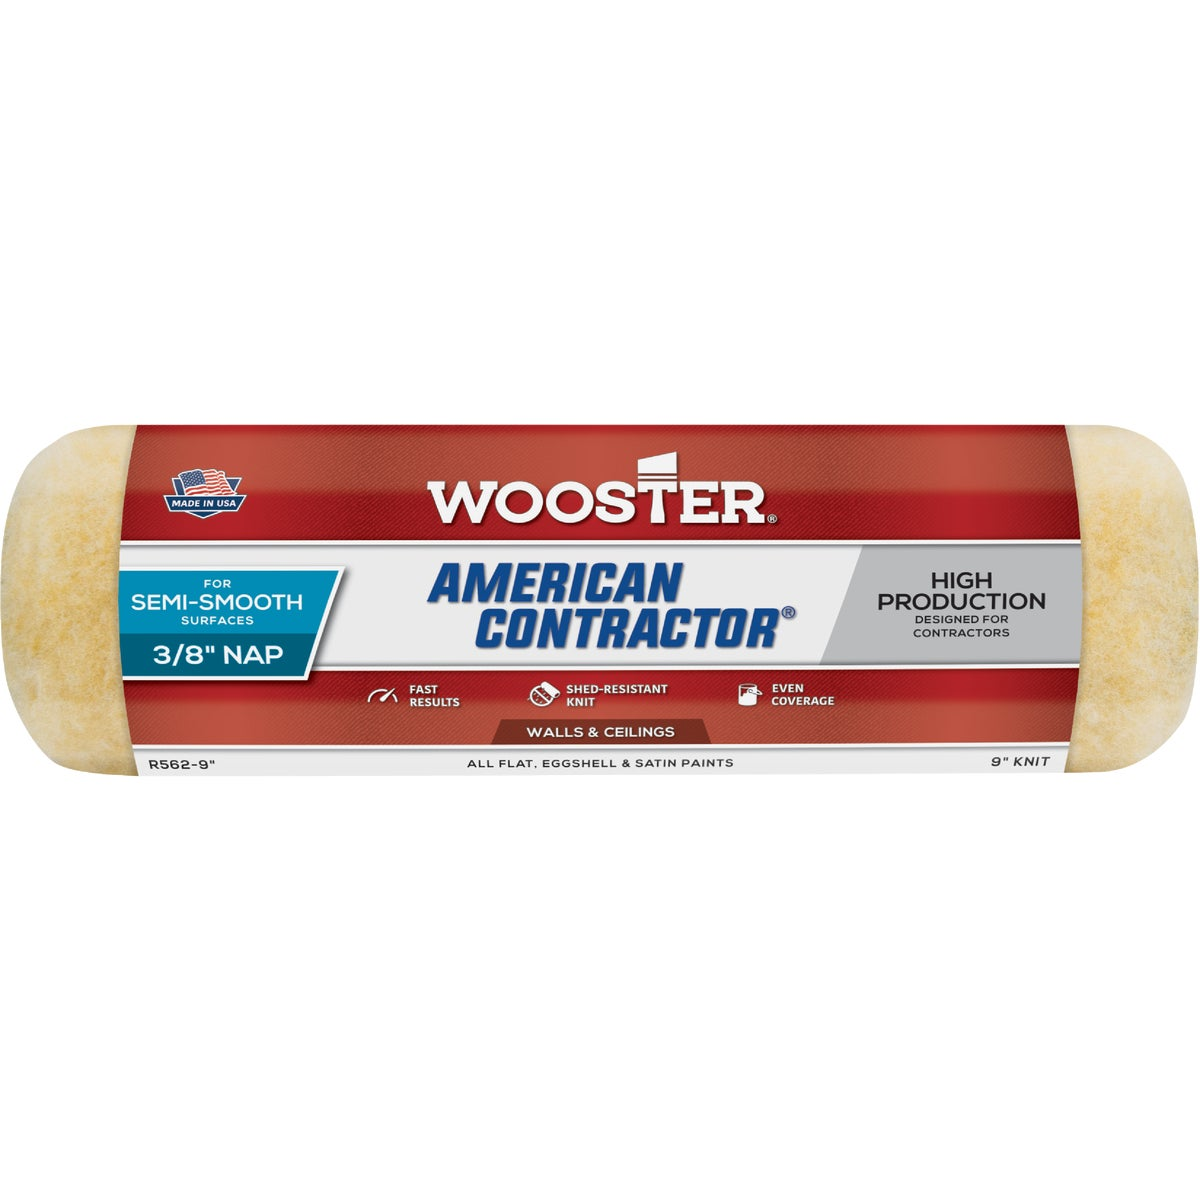 Wooster American Contractor Knit Fabric Roller Cover, R562-9